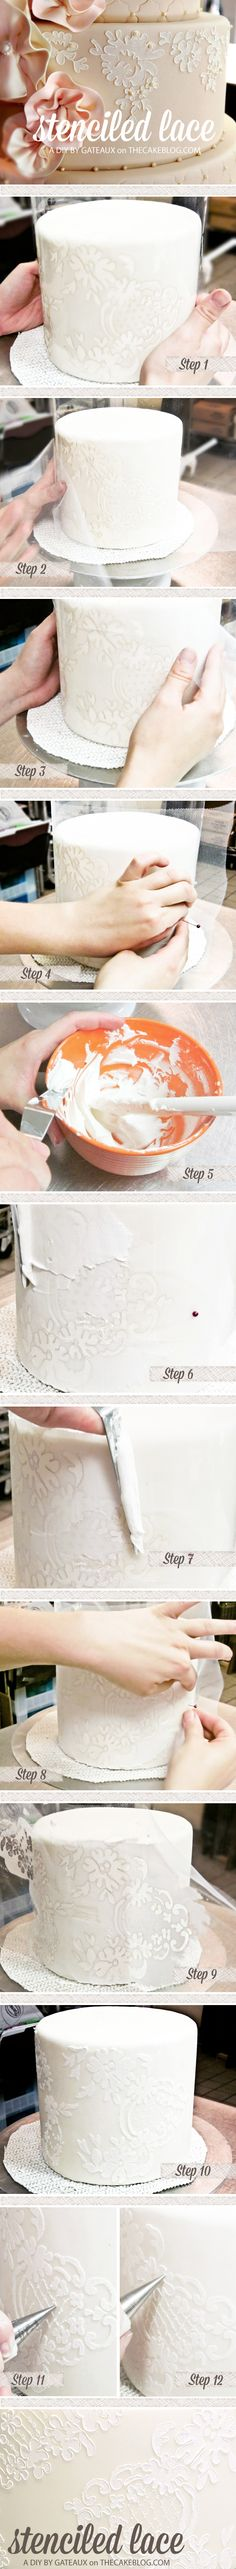 Stenciled Lace Cake Tutorial - idea for cake decorating technique Cake Decorating Techniques, Cake Decorating Tutorials, Cookie Decorating, Decorating Cakes, Cake Icing, Cupcake Cakes, Car Cakes, Pretty Cakes, Beautiful Cakes